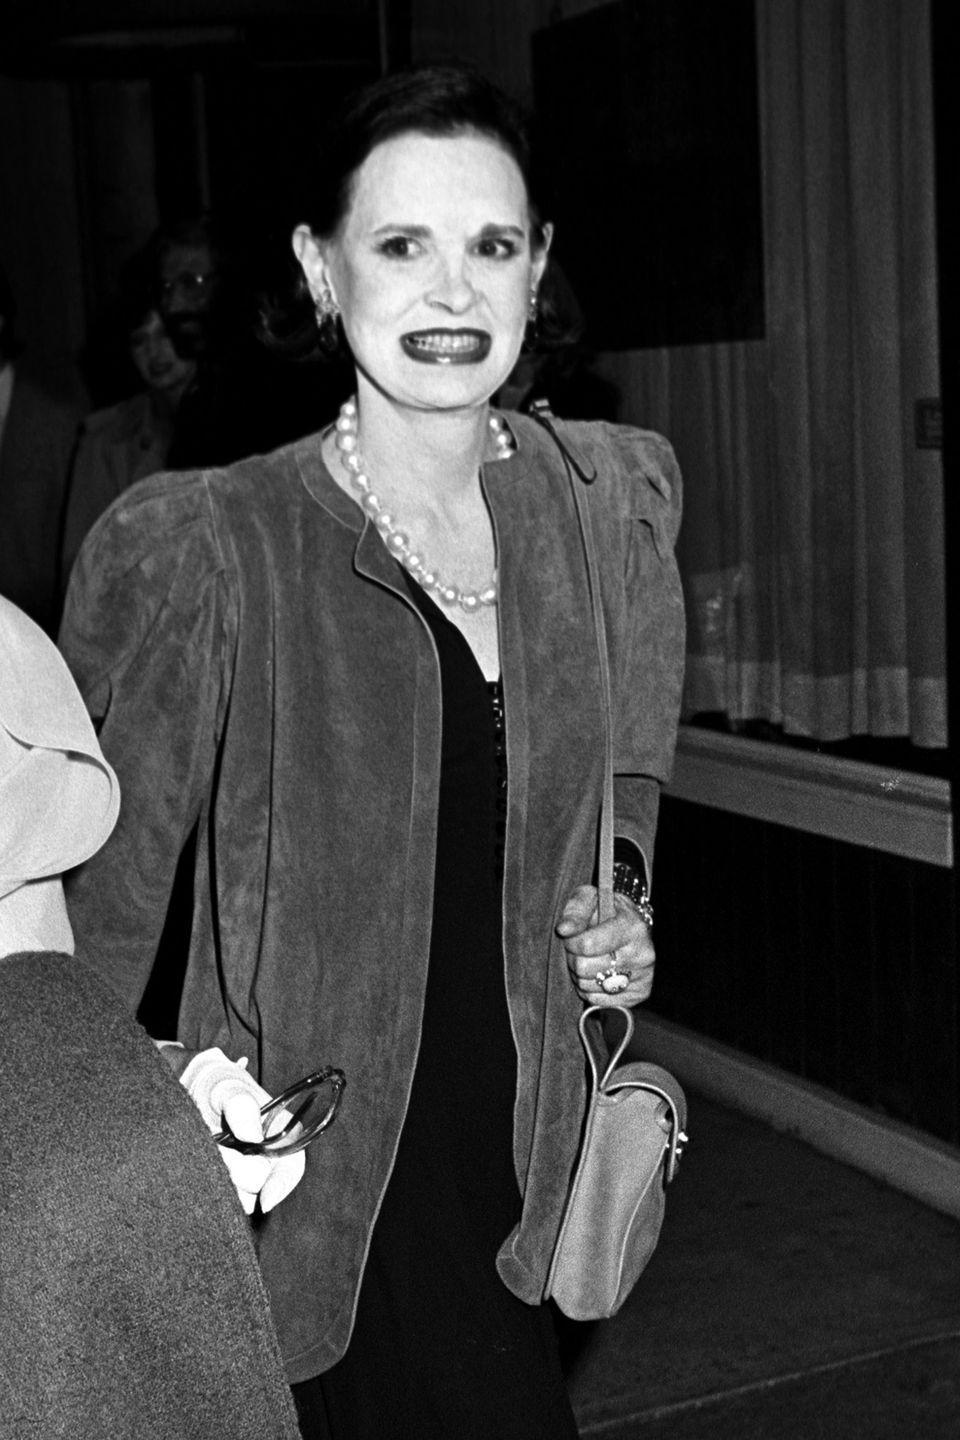 <p>Vanderbilt at Swifty Lazar's party for Billy Wilder at Mortimer's restaurant in New York City.</p>